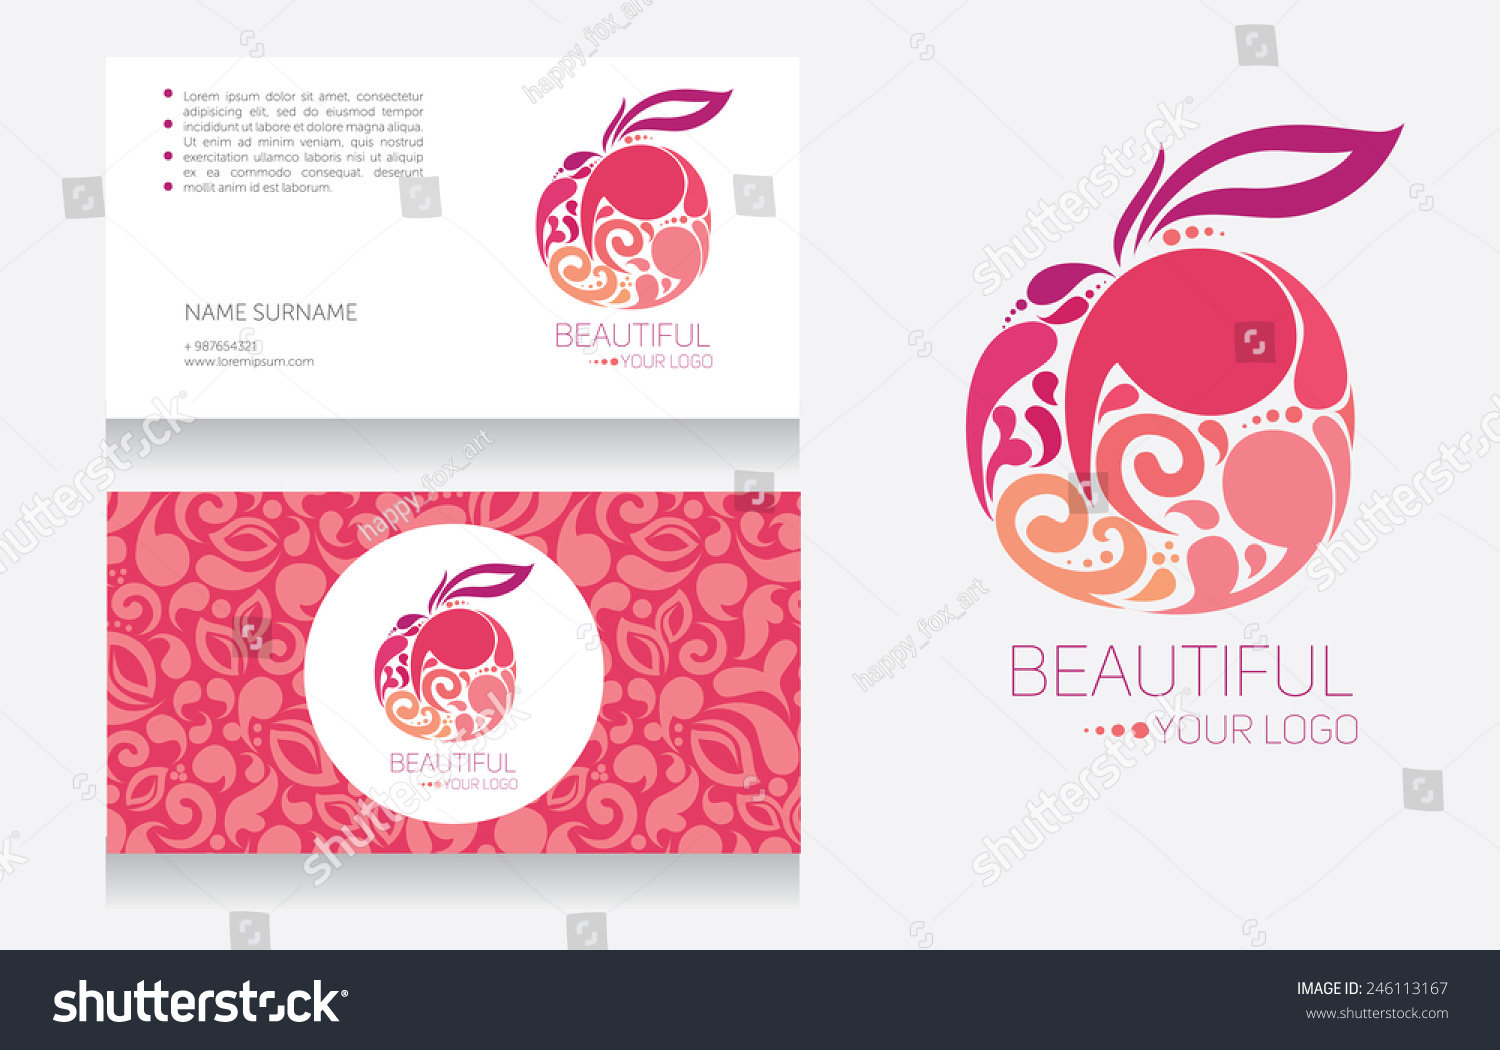 Business Cards Logo Template Pink Colors Stock Vector 246113167 ...